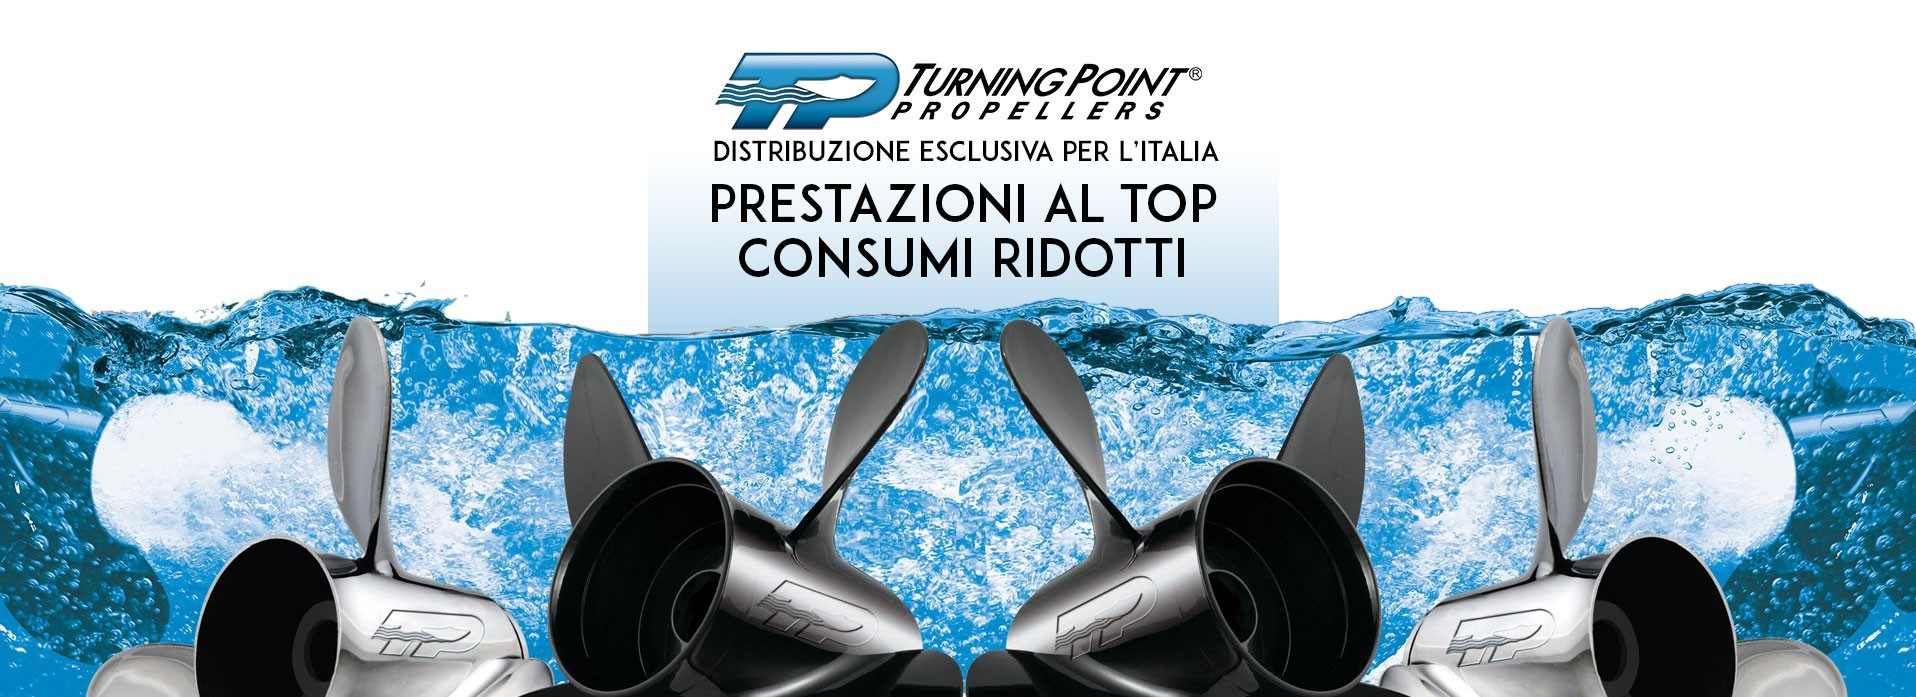 Turning Point Propellers - Distribuzione esclusiva per l'Italia